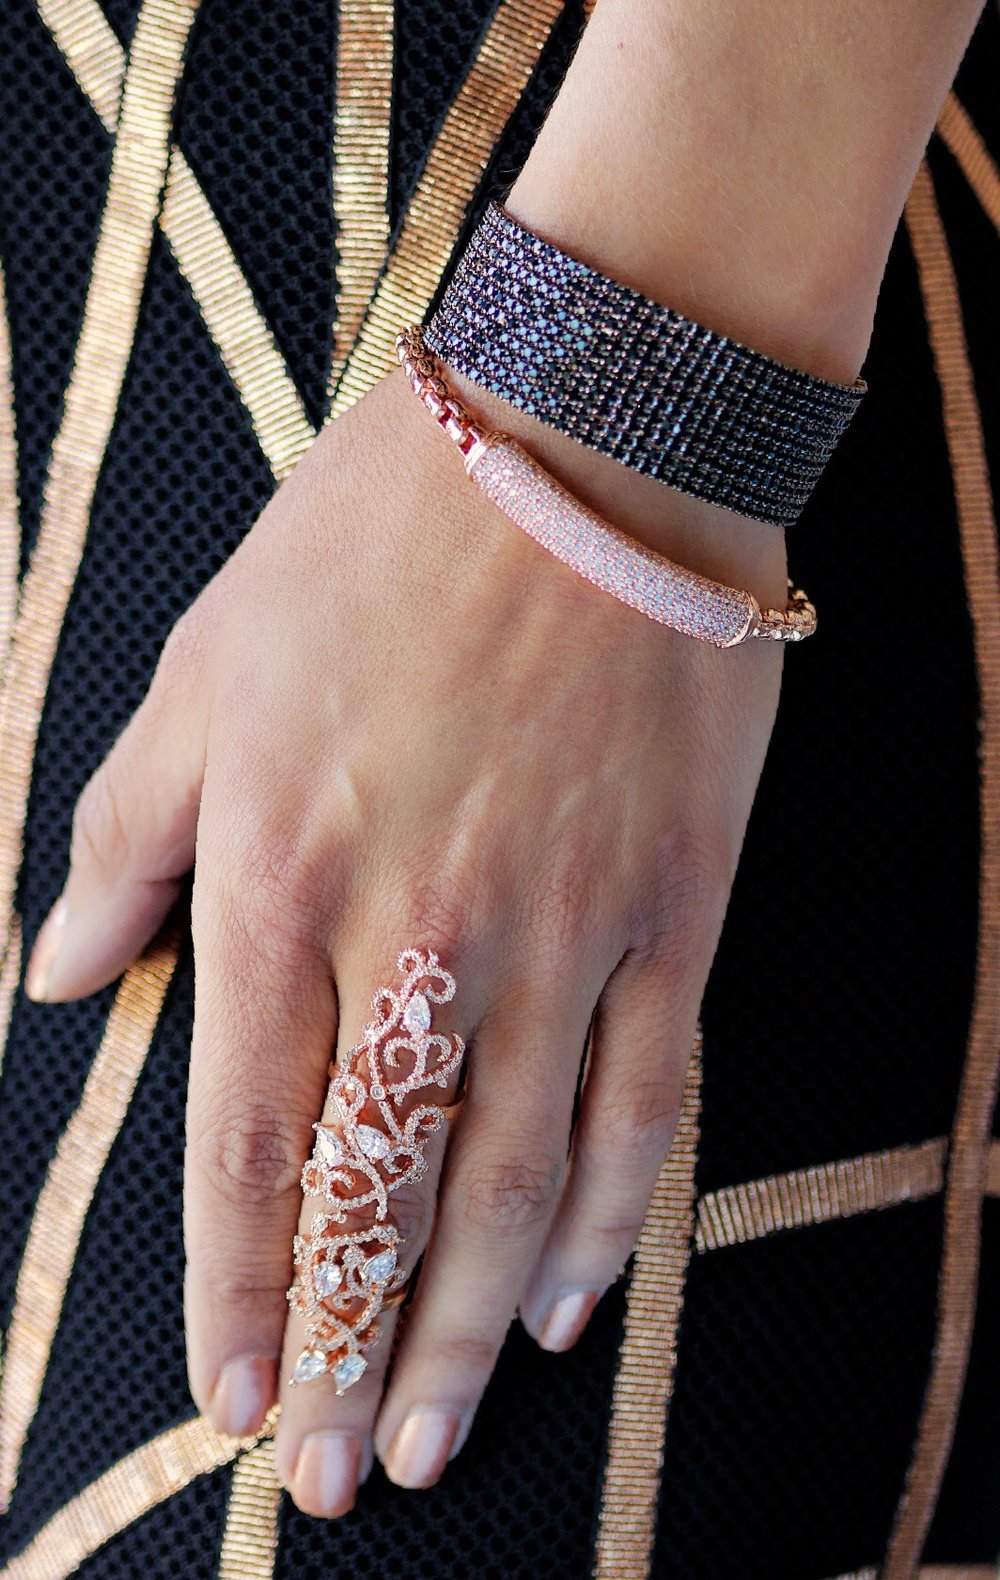 Rose Gold Garden of Eden Knuckle Ring, Rose Gold CZ Bar Bracelet w/ Ball Charm Accent, 10 Row CZ Bangle, Black- Theia